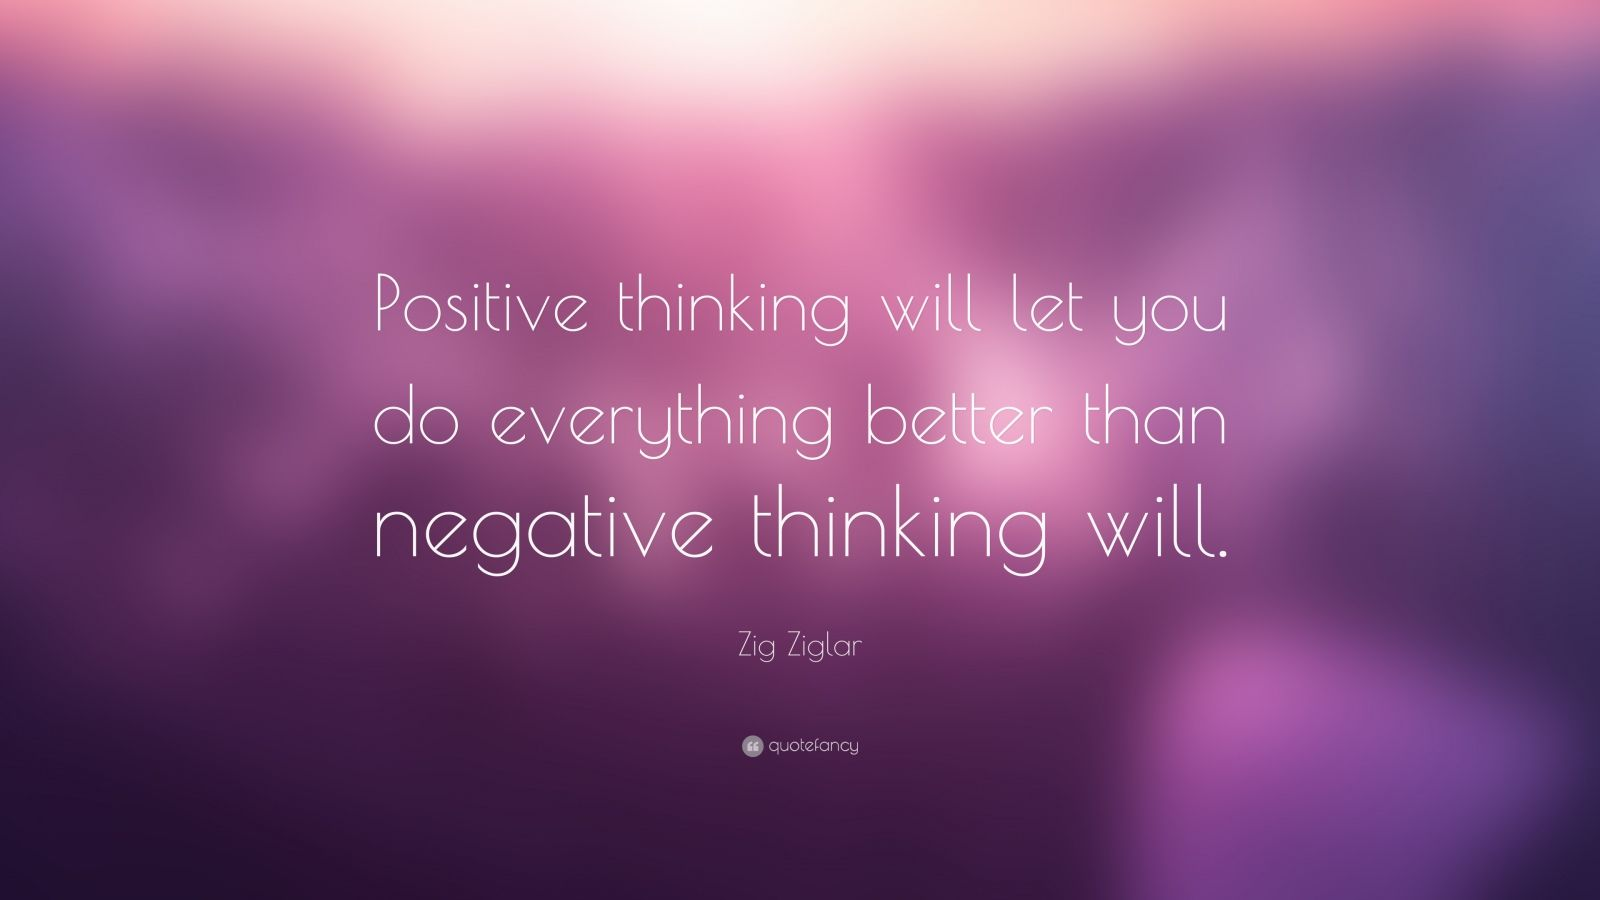 Quotes About Positive Thinking Positive Quotes 53 Wallpapers  Quotefancy